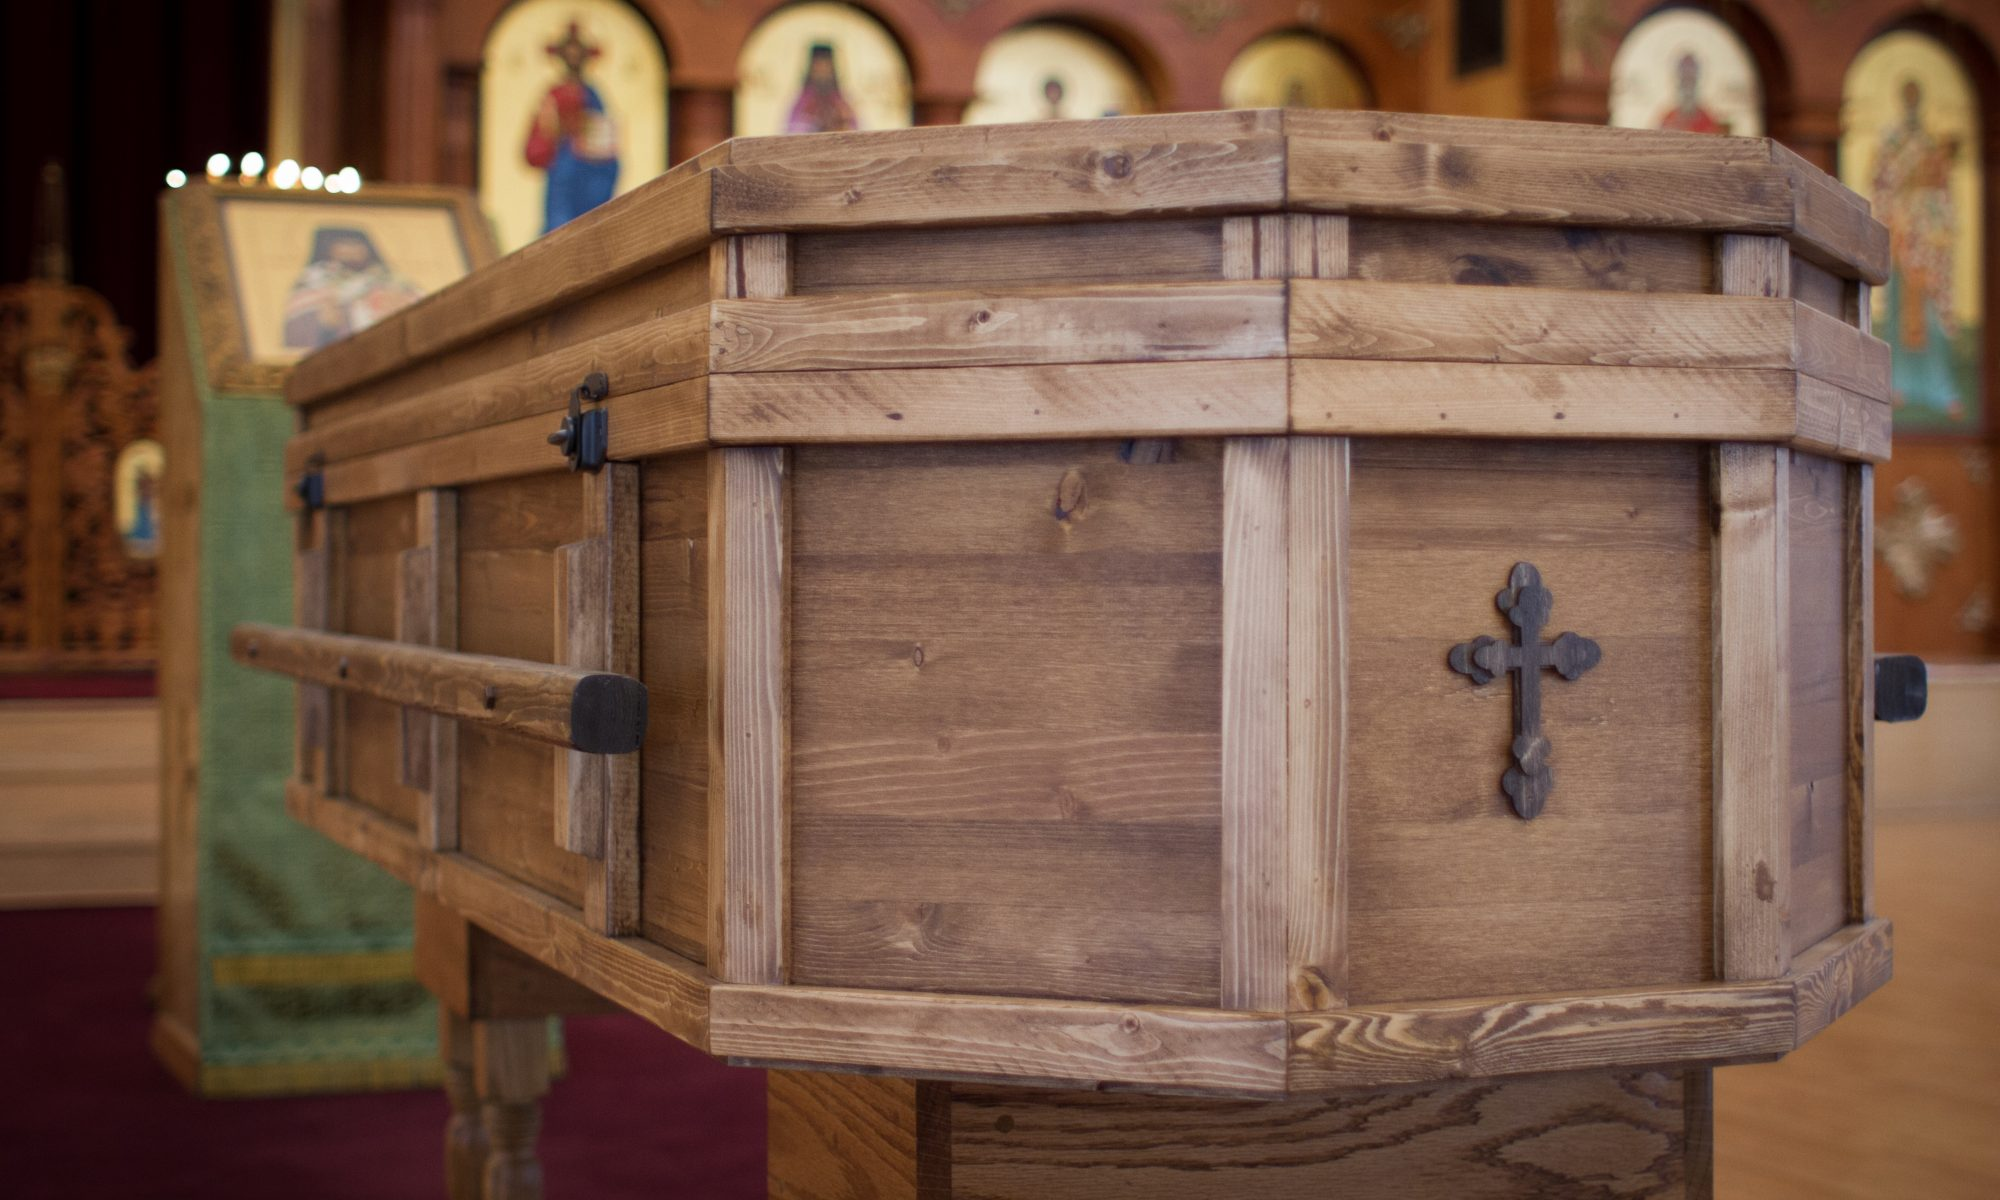 Alaskan Handmade casket with cross